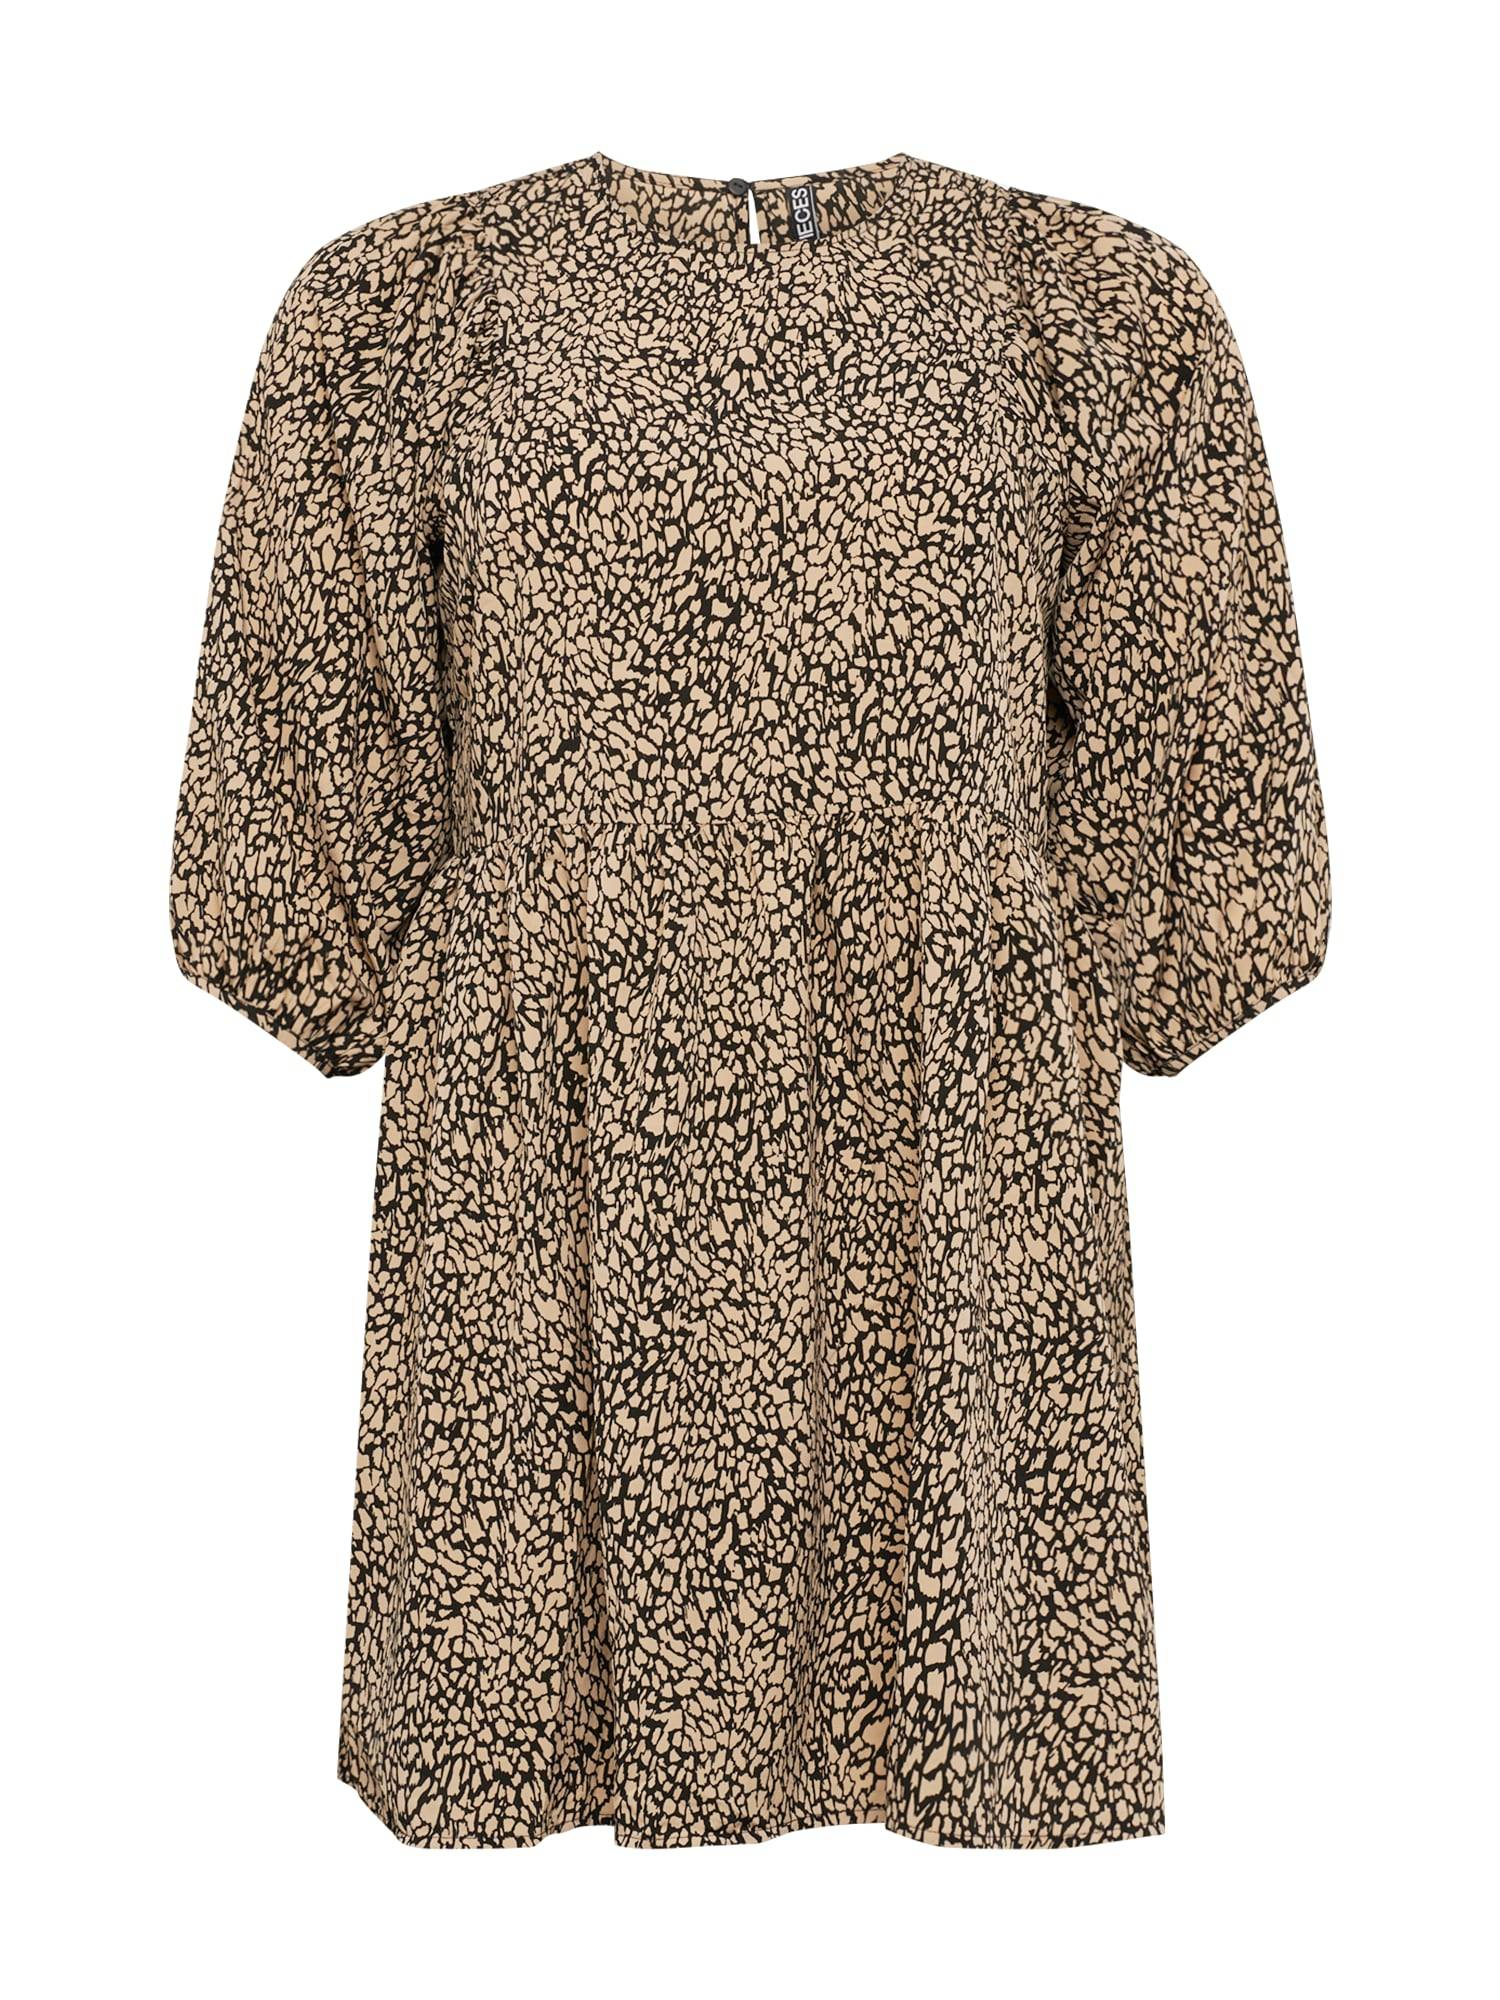 PIECES (Curve) Robe 'GILBERTA'  - Beige - Taille: 46 - female